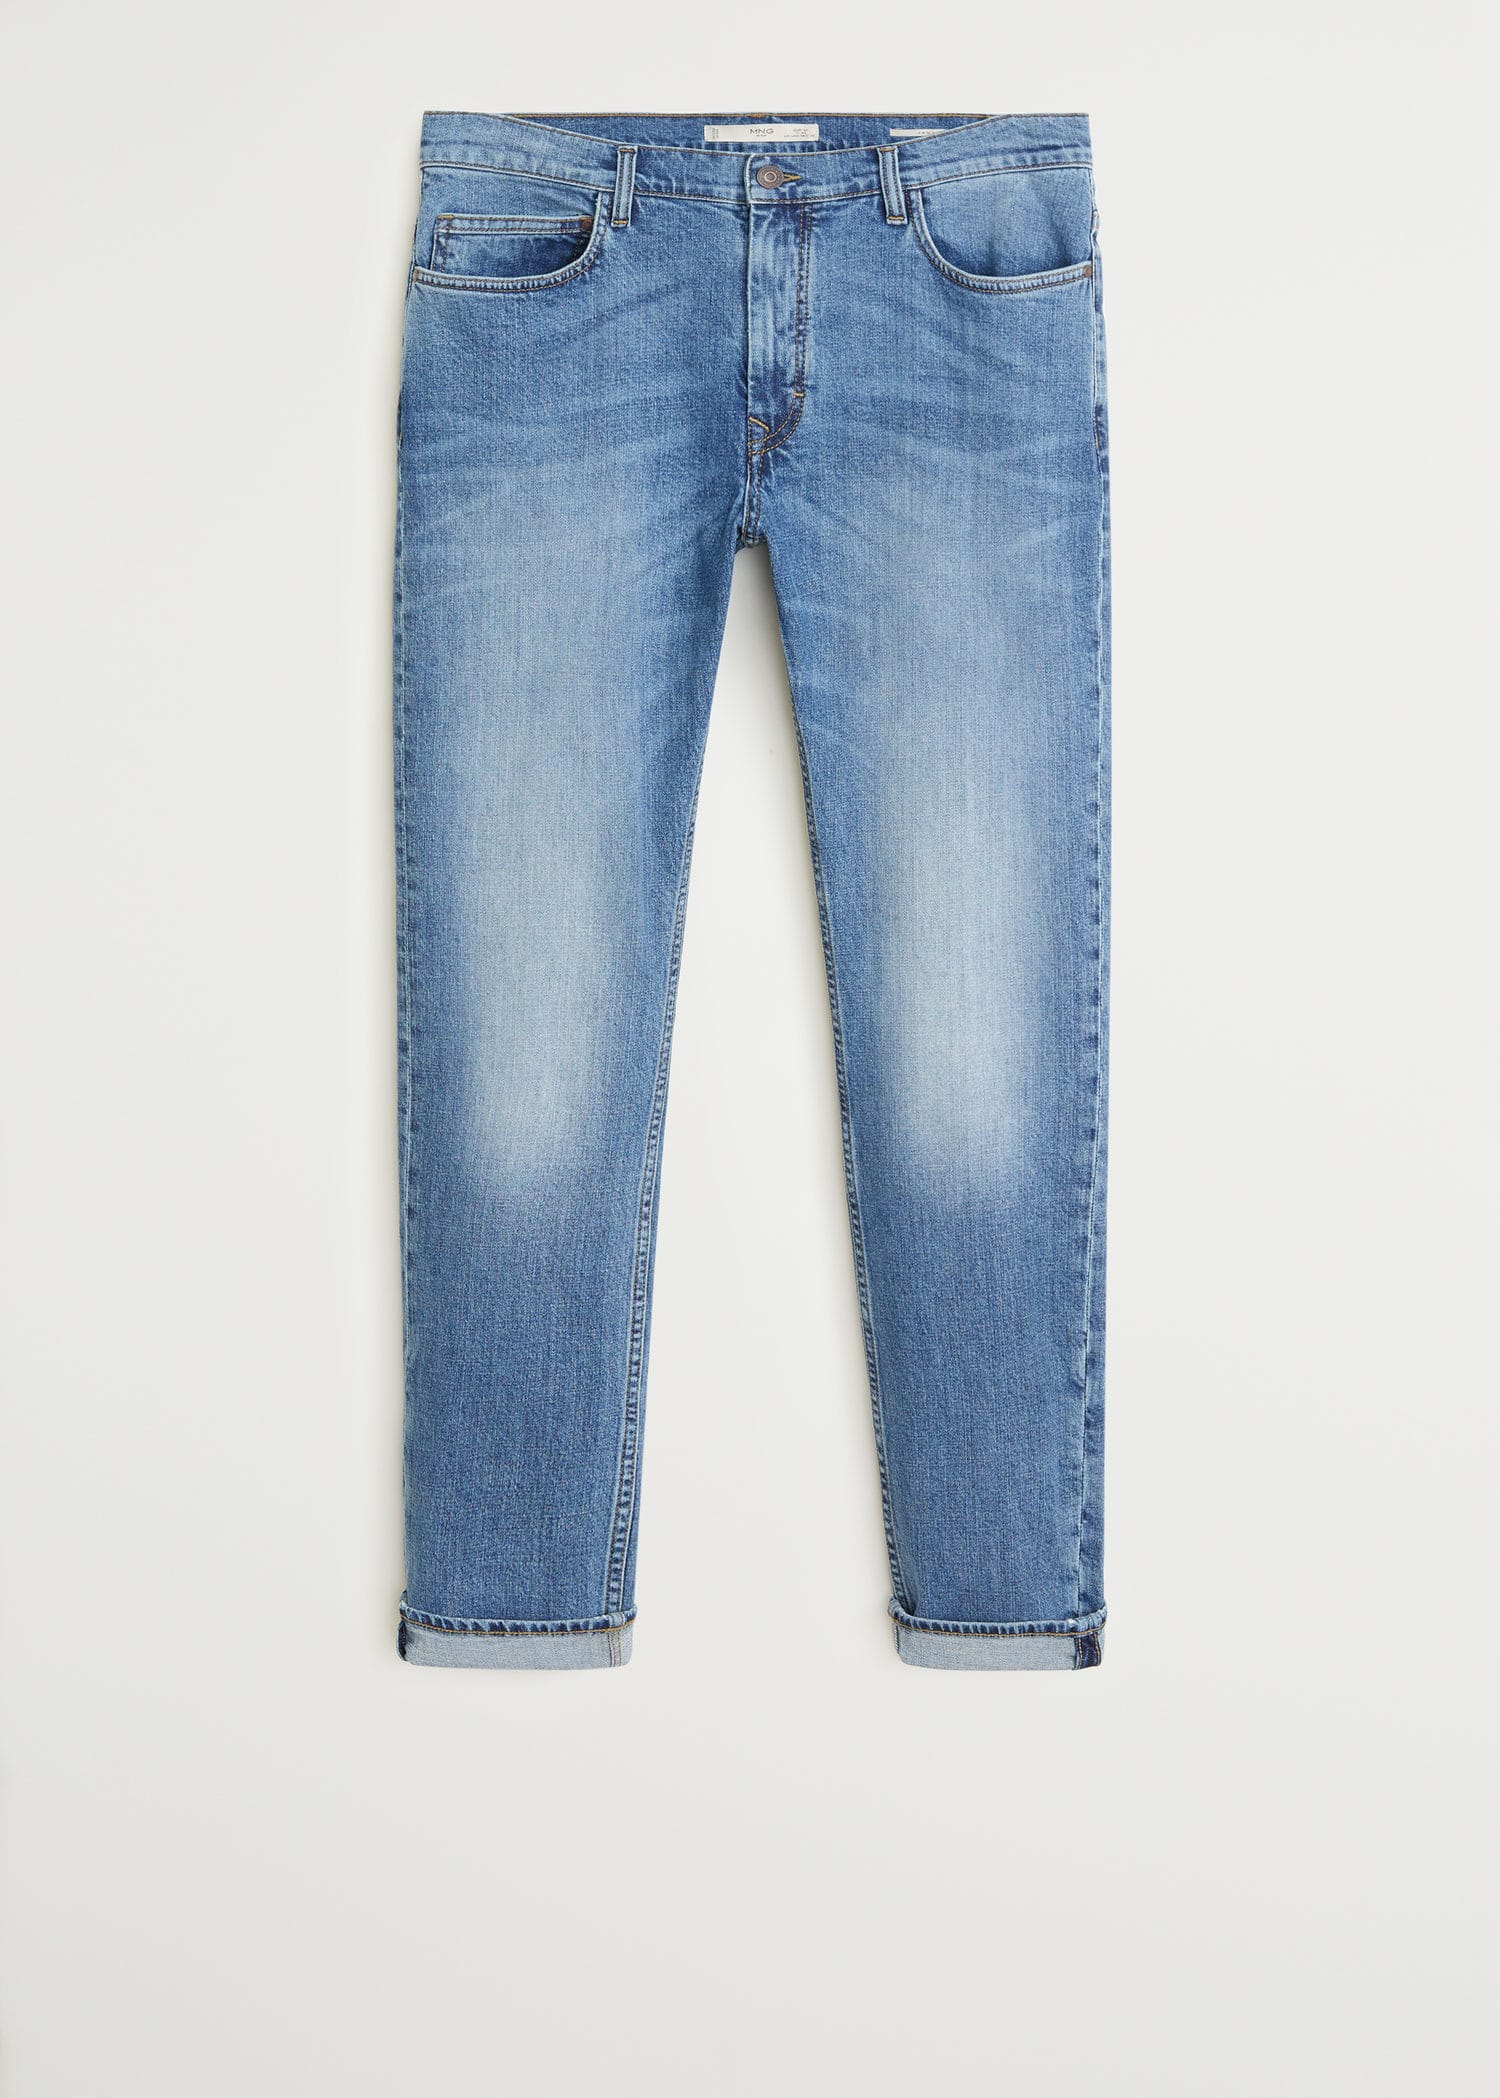 Slim fit dark wash jan jeans Man | Mango Man Bermuda